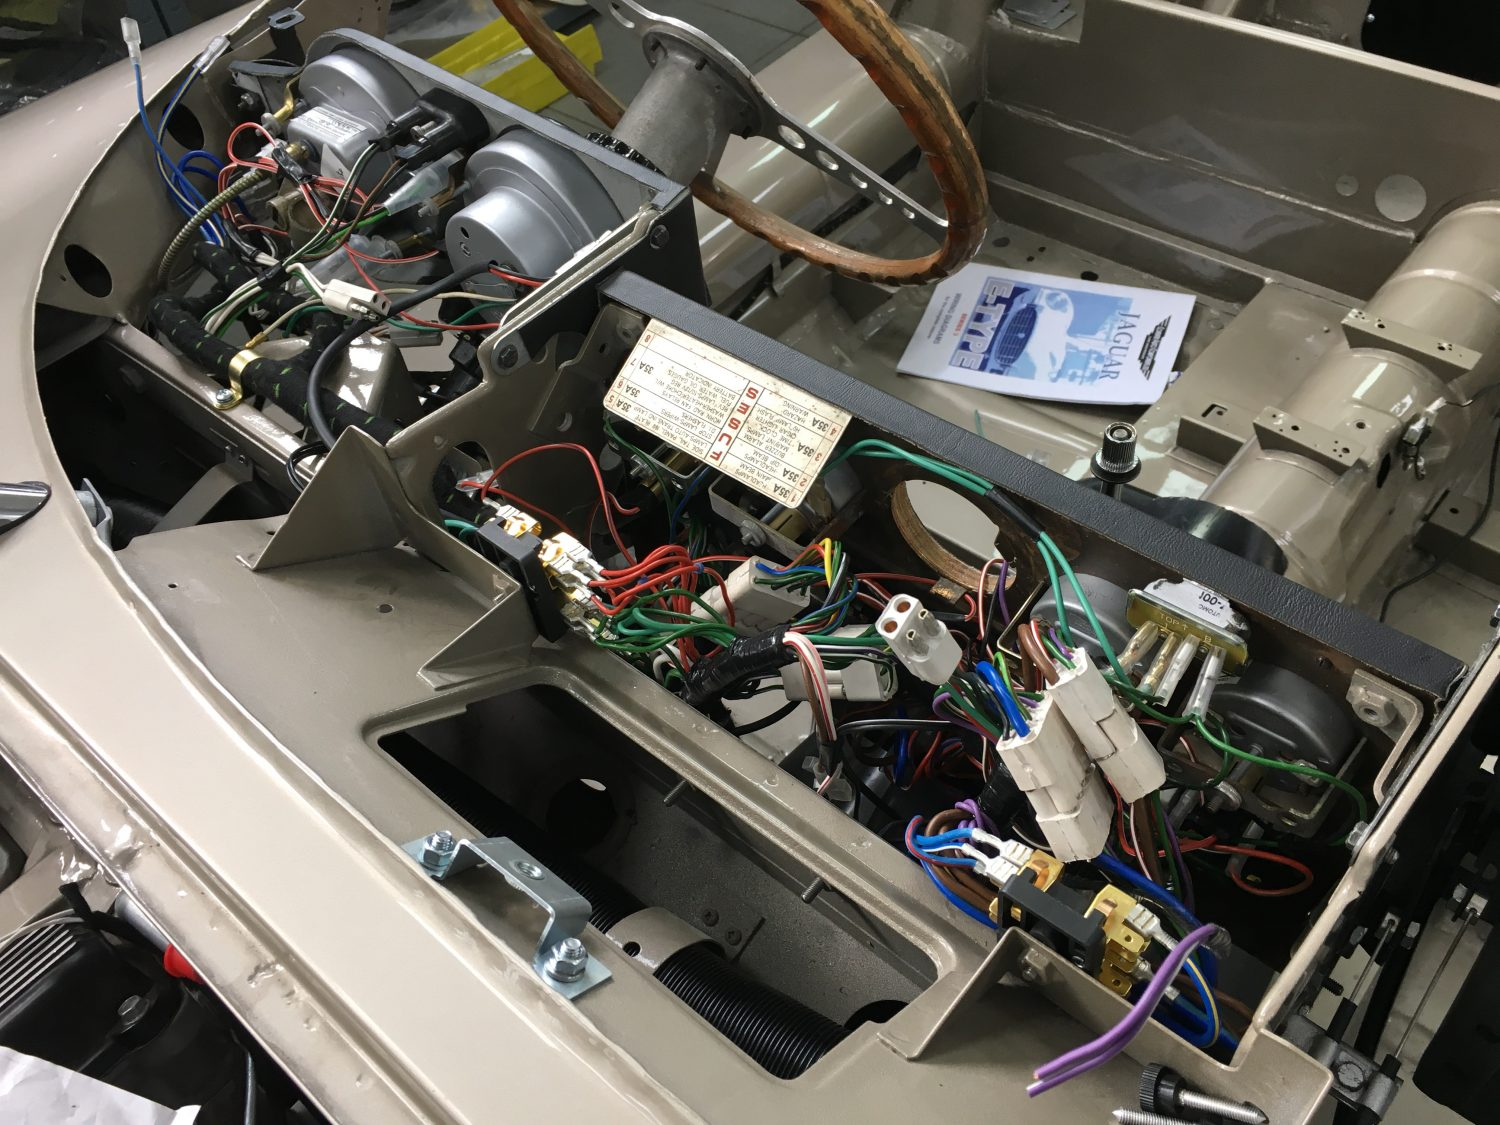 Fitting Up The New V12 Wiring Loom Bridge Classic Cars Automotive Looms Centre Section And Dashboard Are Complete